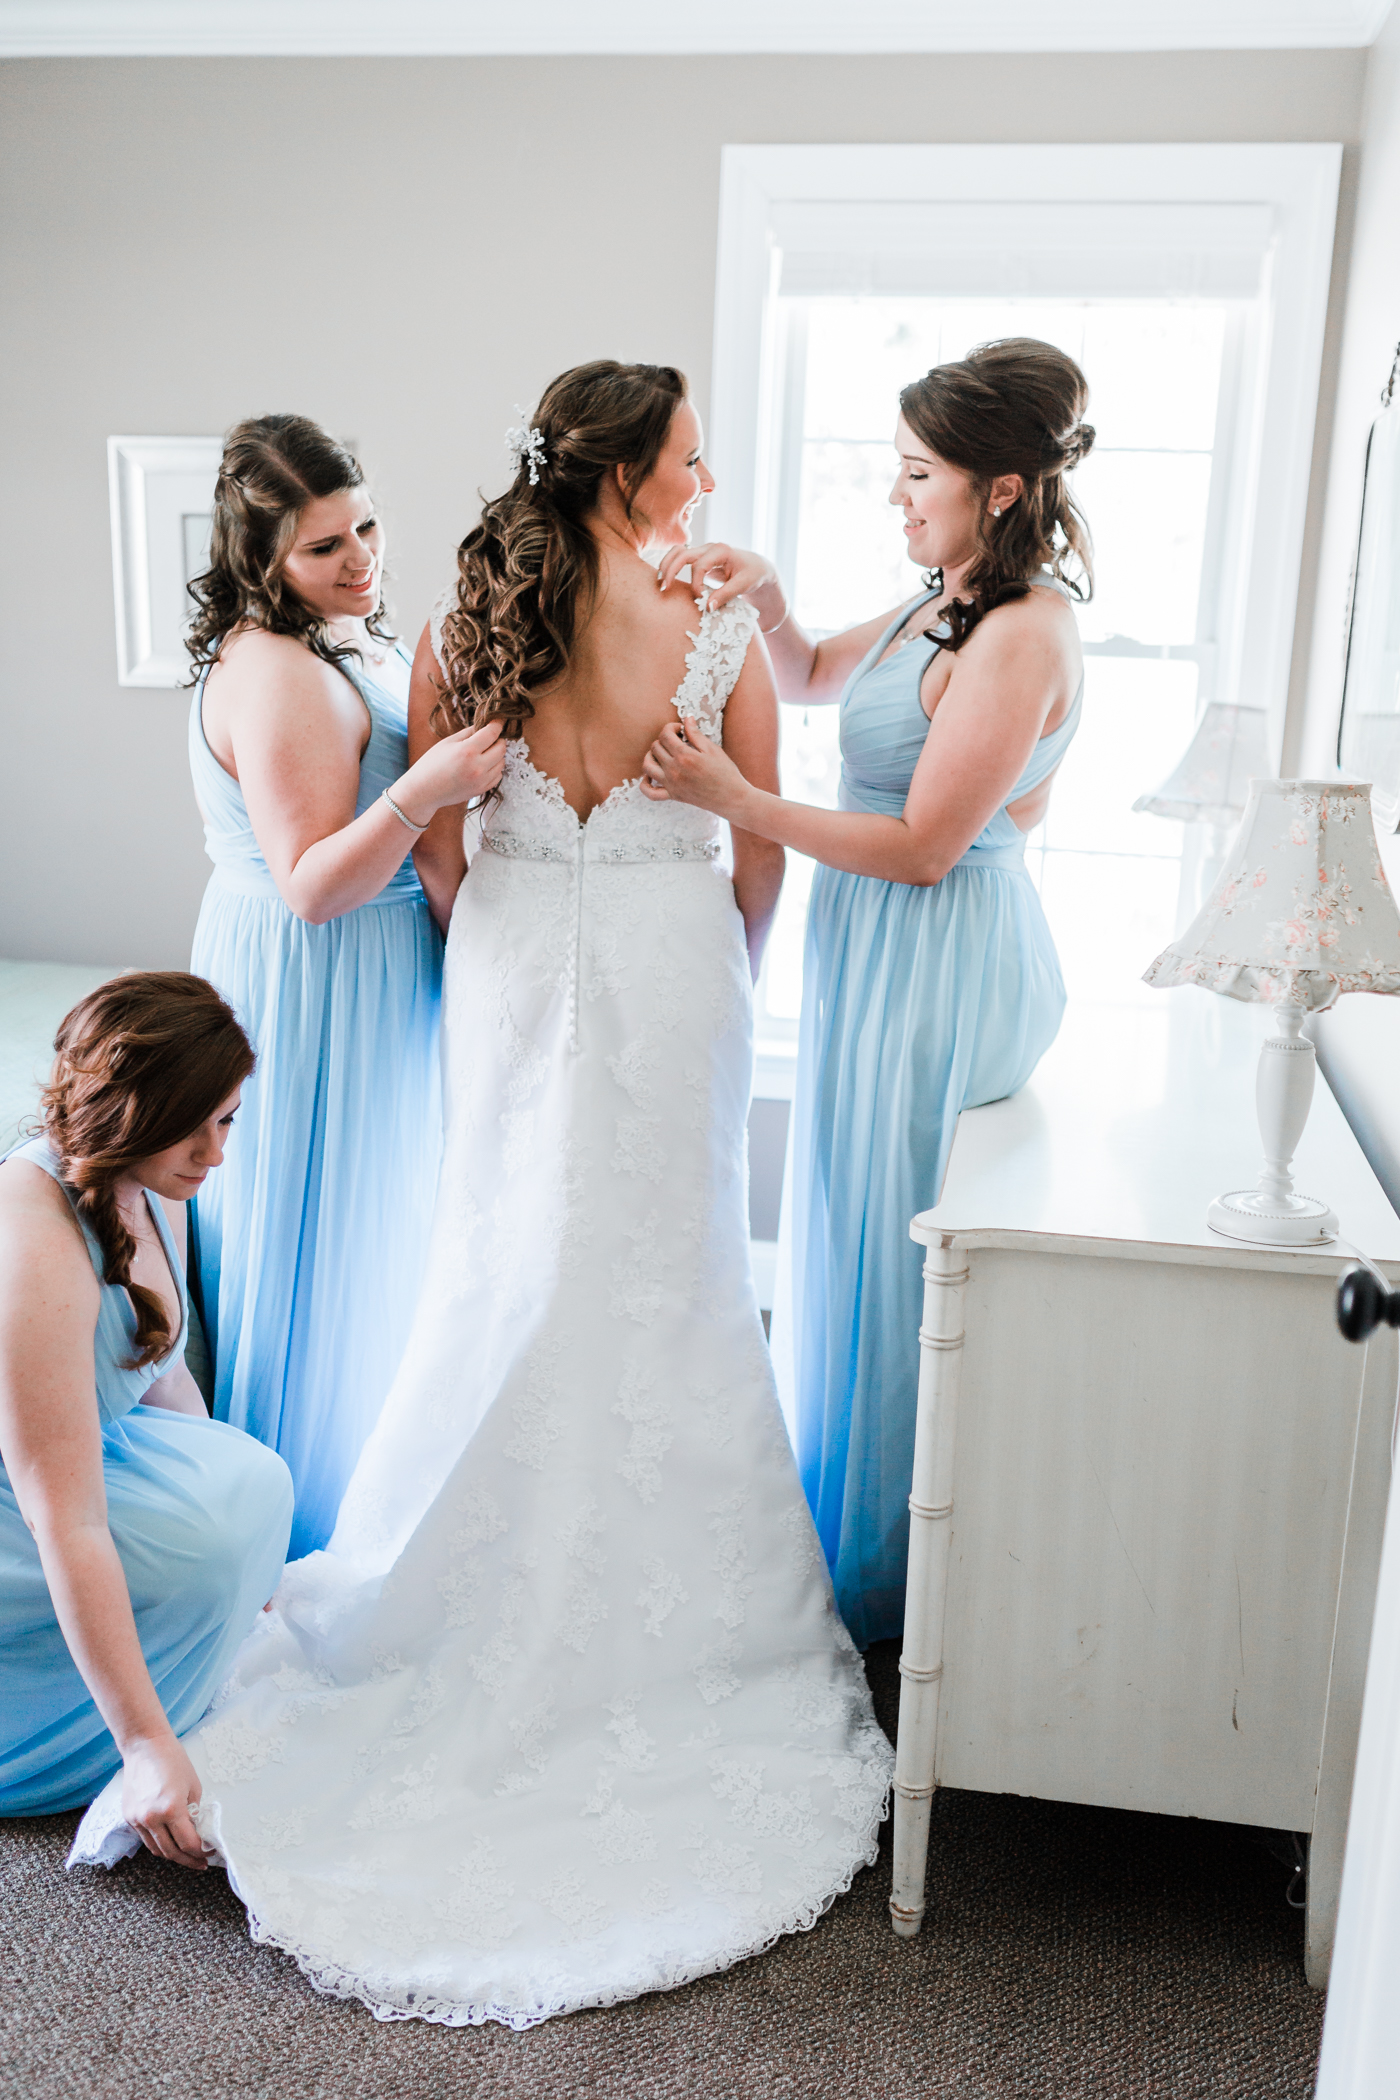 Bride and her bridesmaids getting ready for the wedding